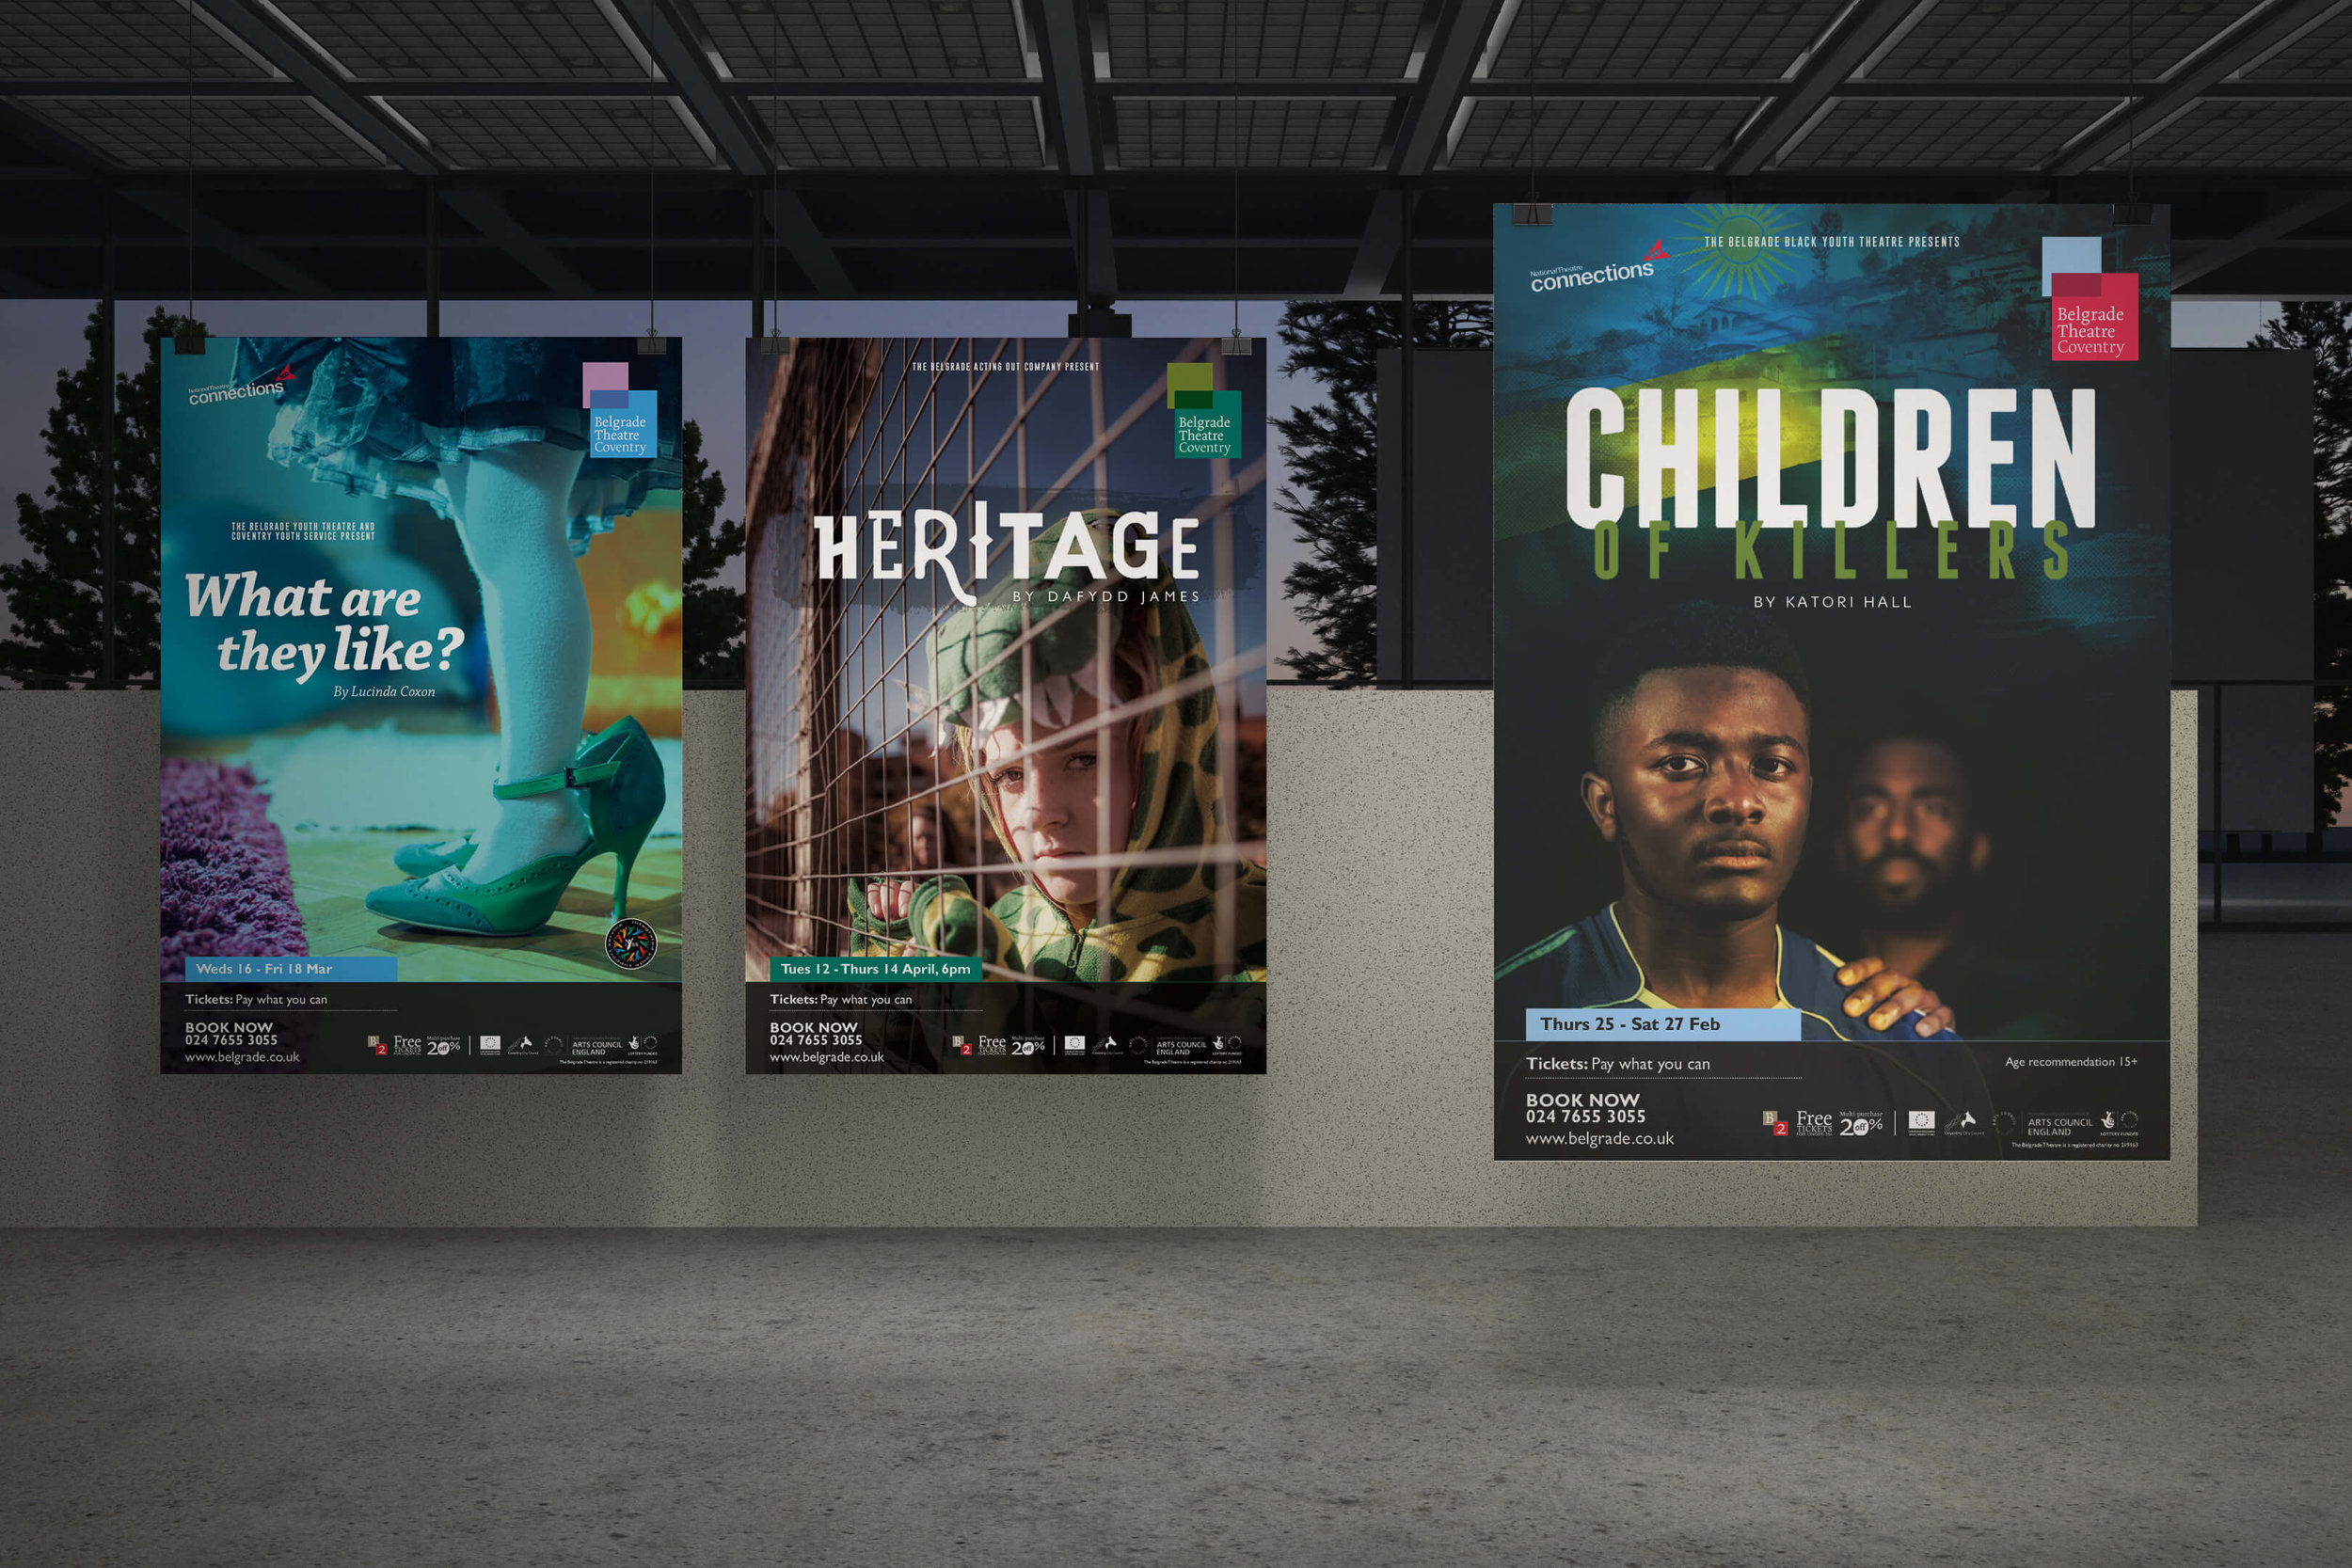 Heritage, Children of Killers and What Are They Like? artwork